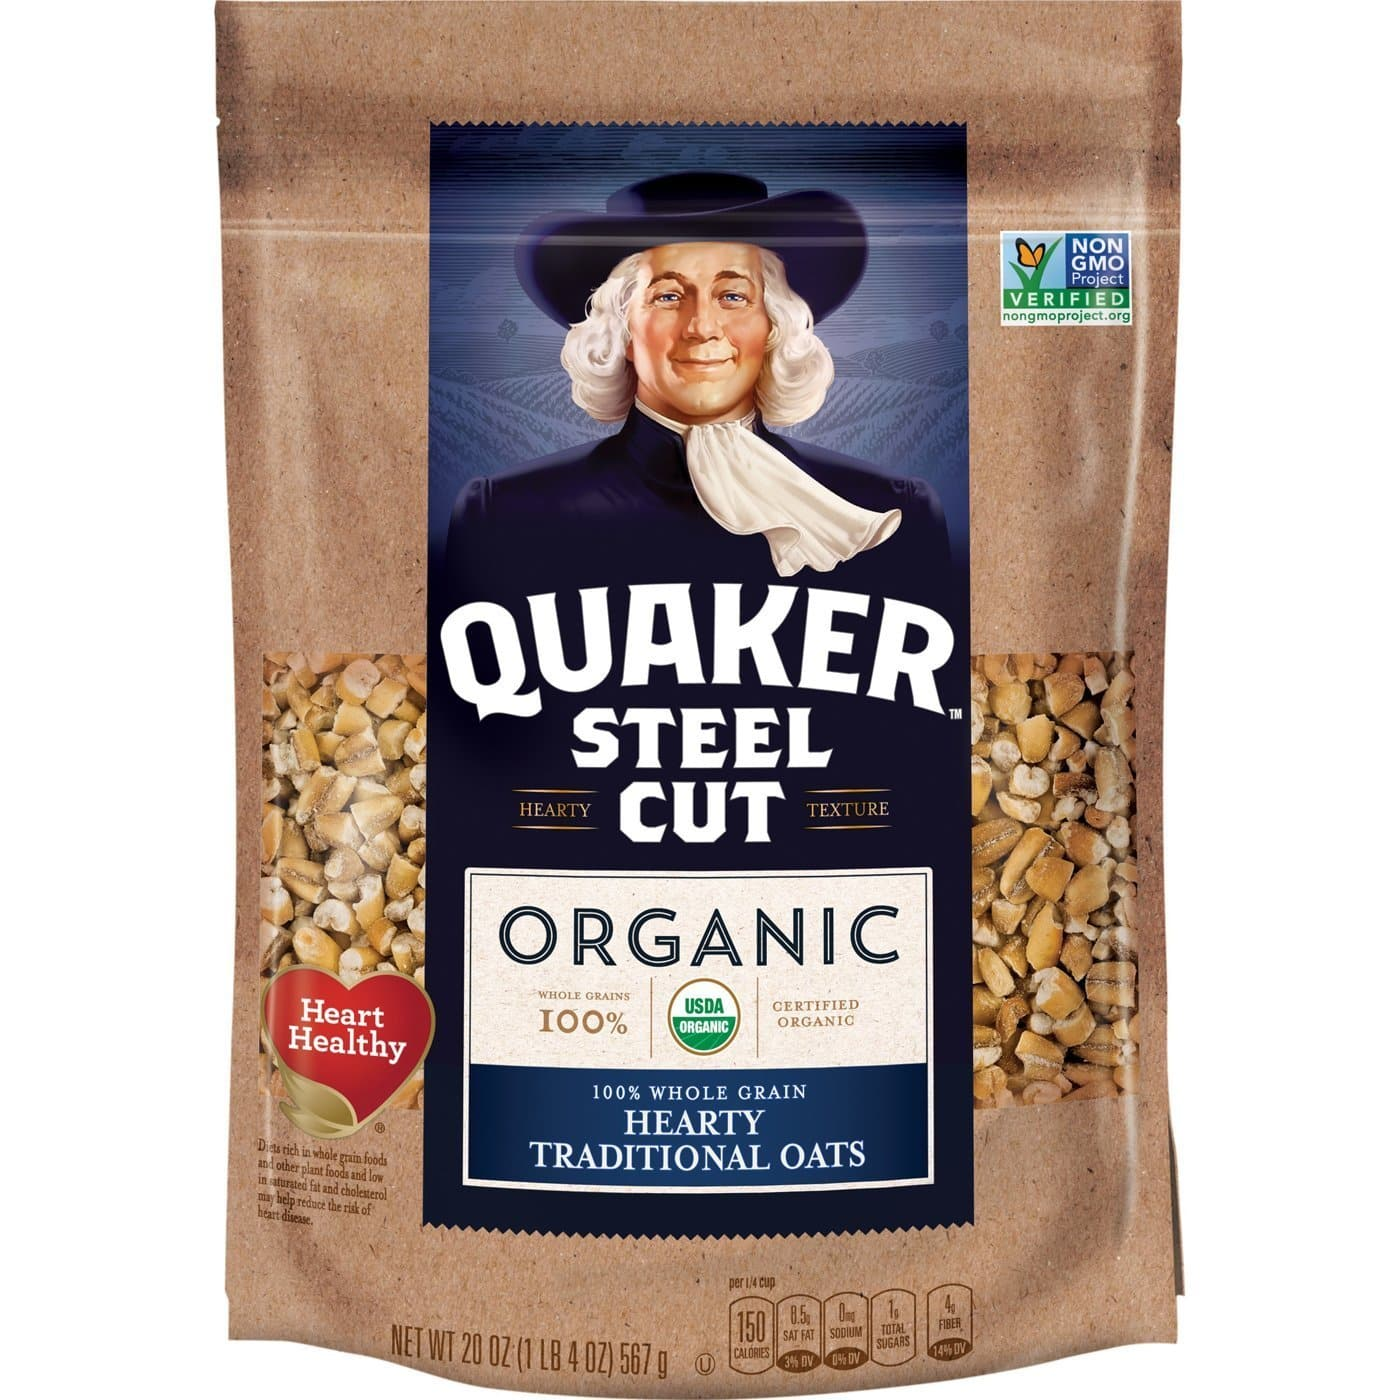 4-Pack 20-Oz Quaker Organic Steel Cut Oats $8.27 w/ S&S + Free Shipping w/ Prime or on $25+